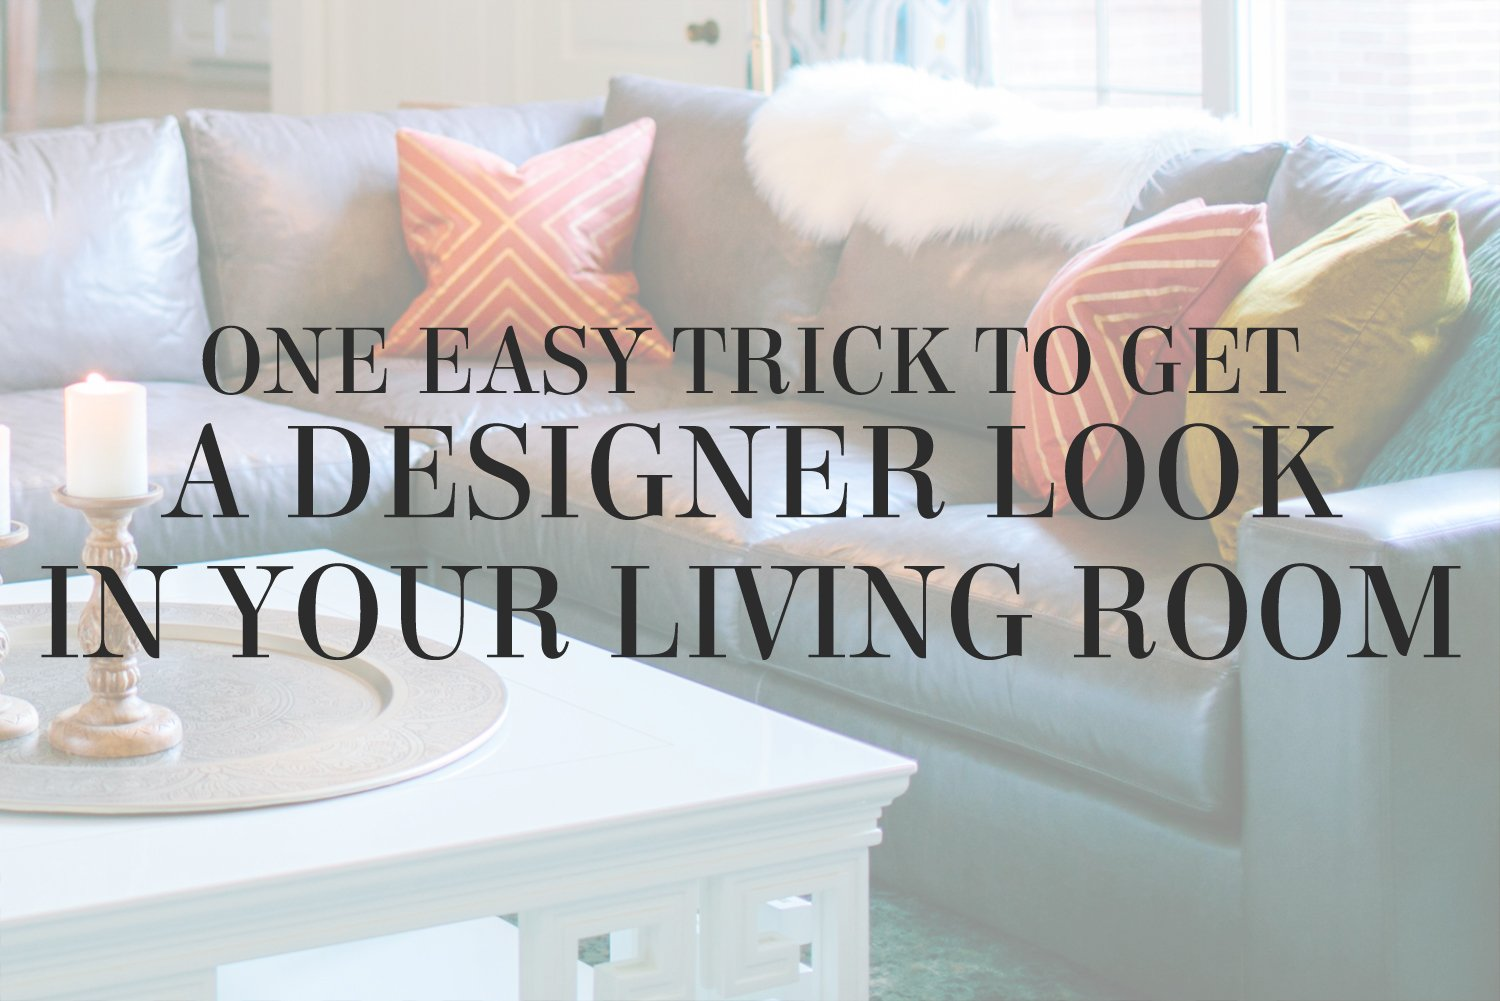 One Easy Trick to Get a Designer Look in Your Living Room Lesley